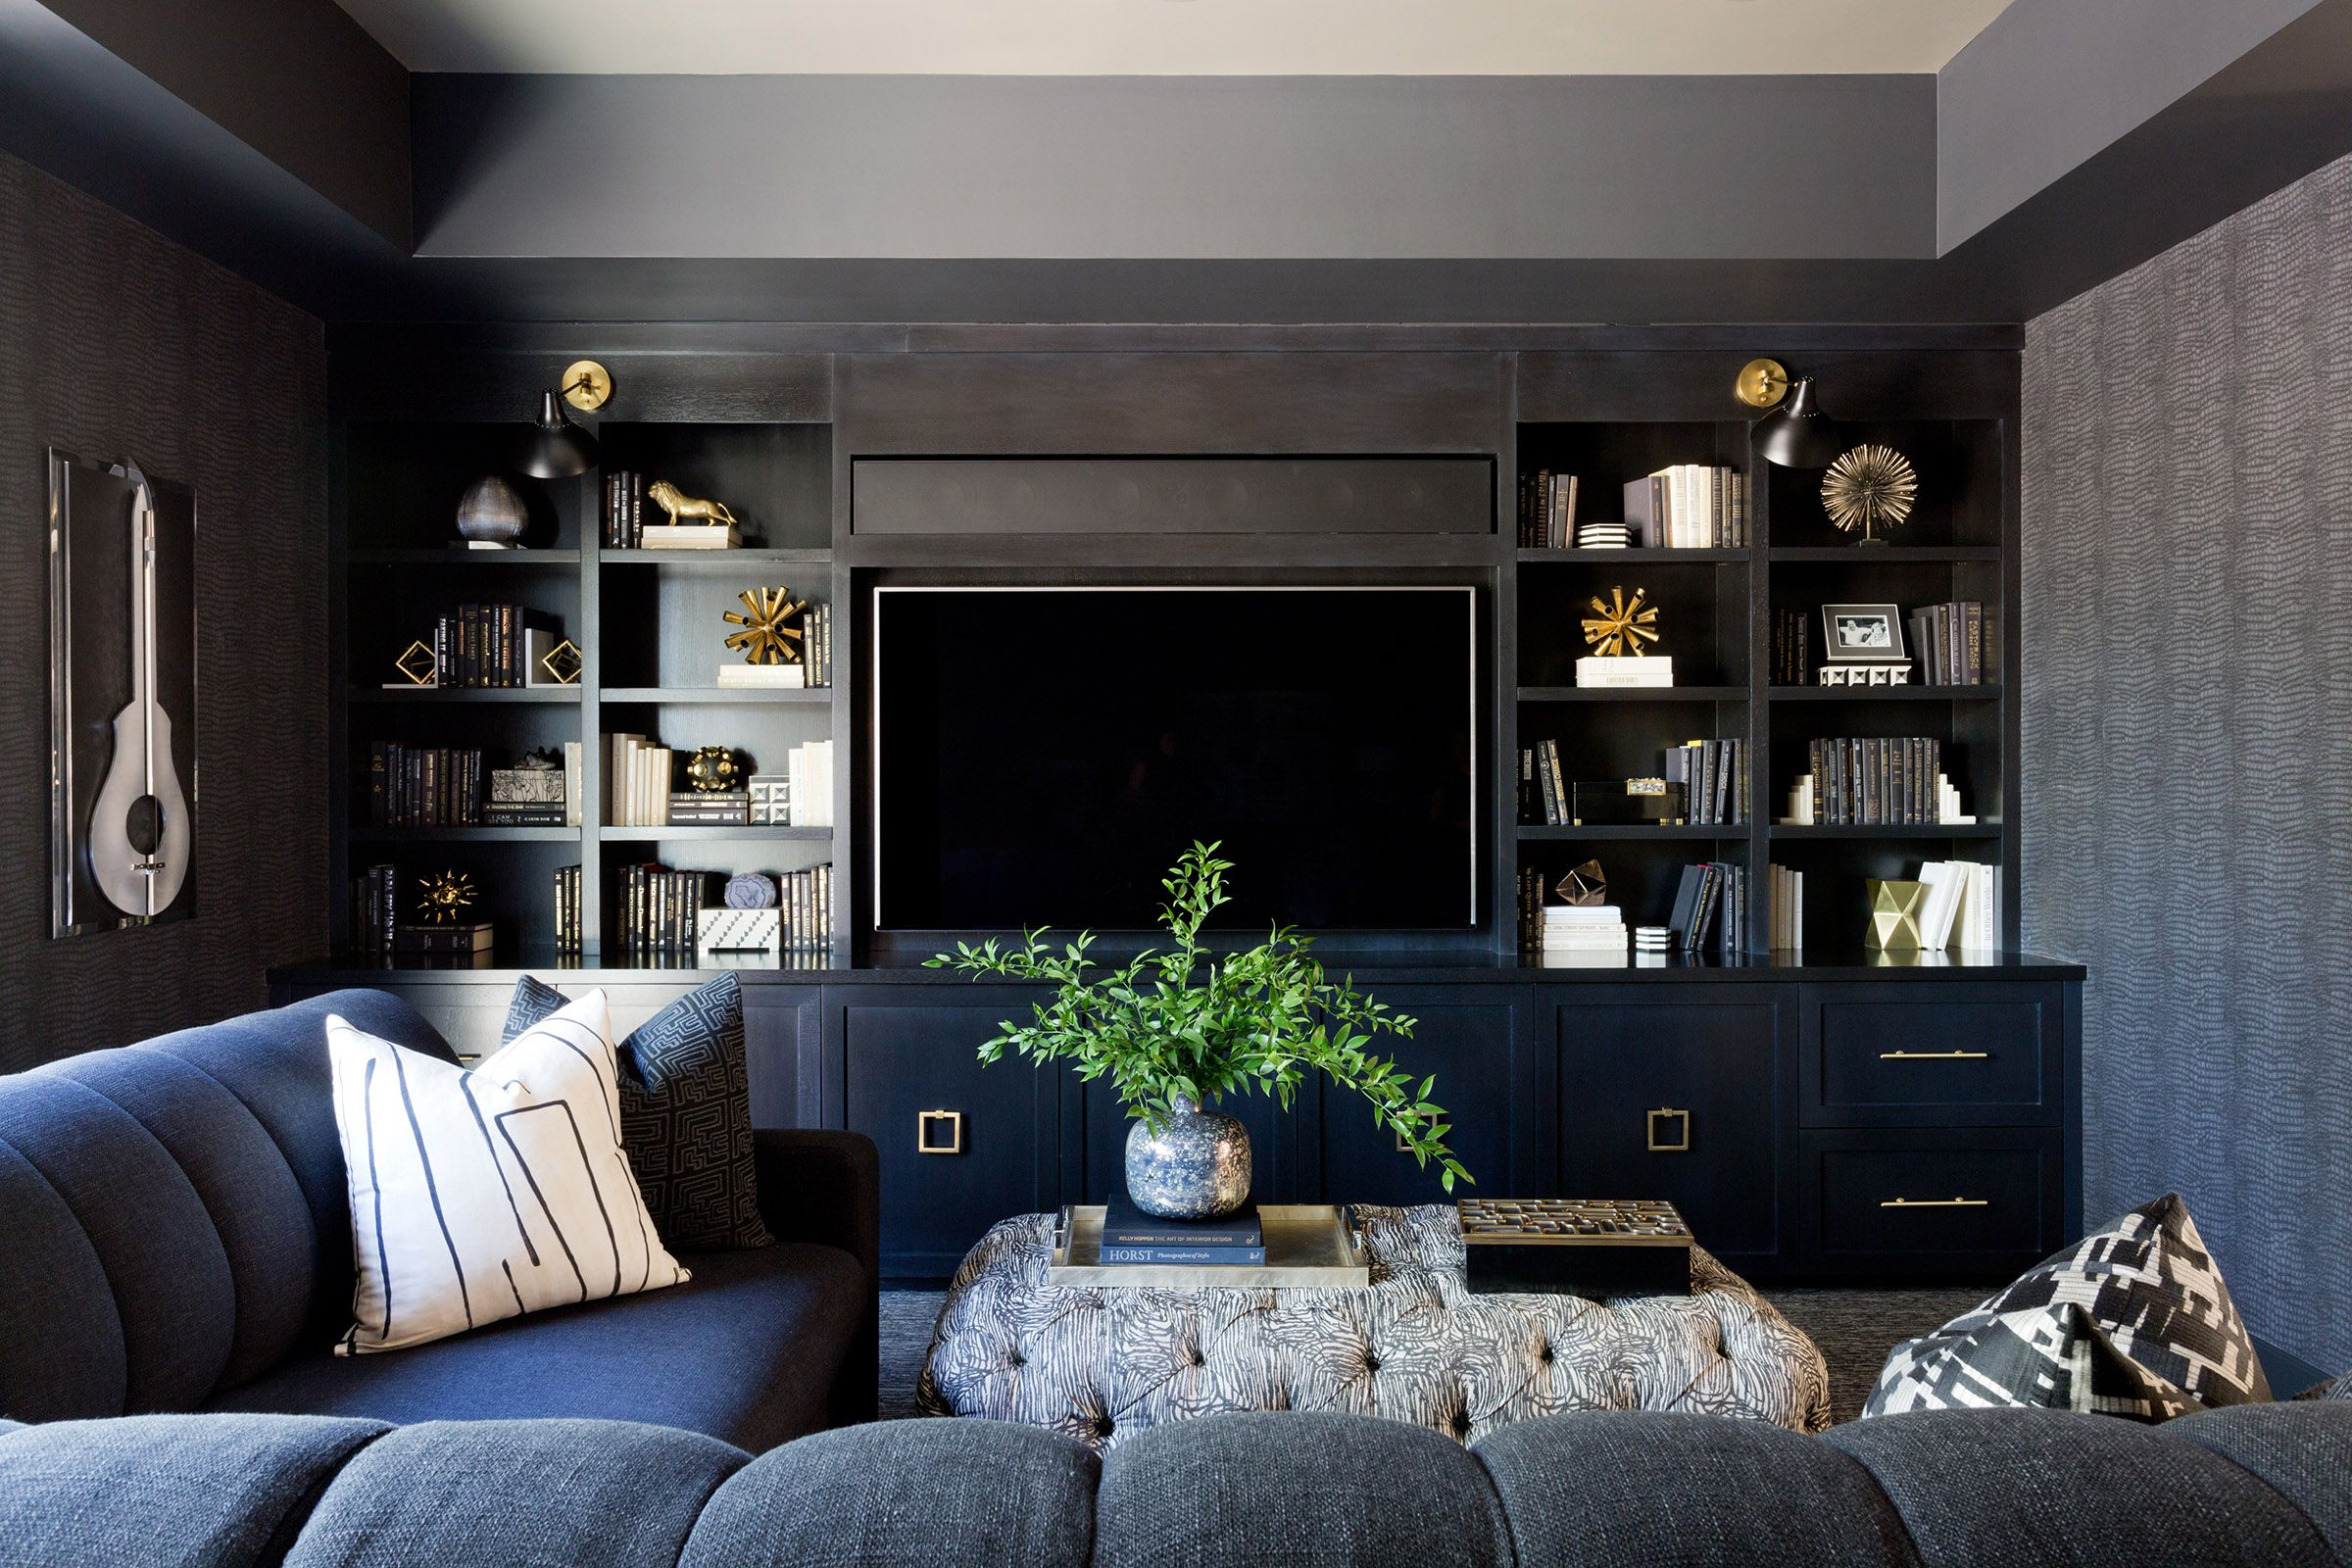 15 Beautiful Focal Point Ideas for Living Rooms